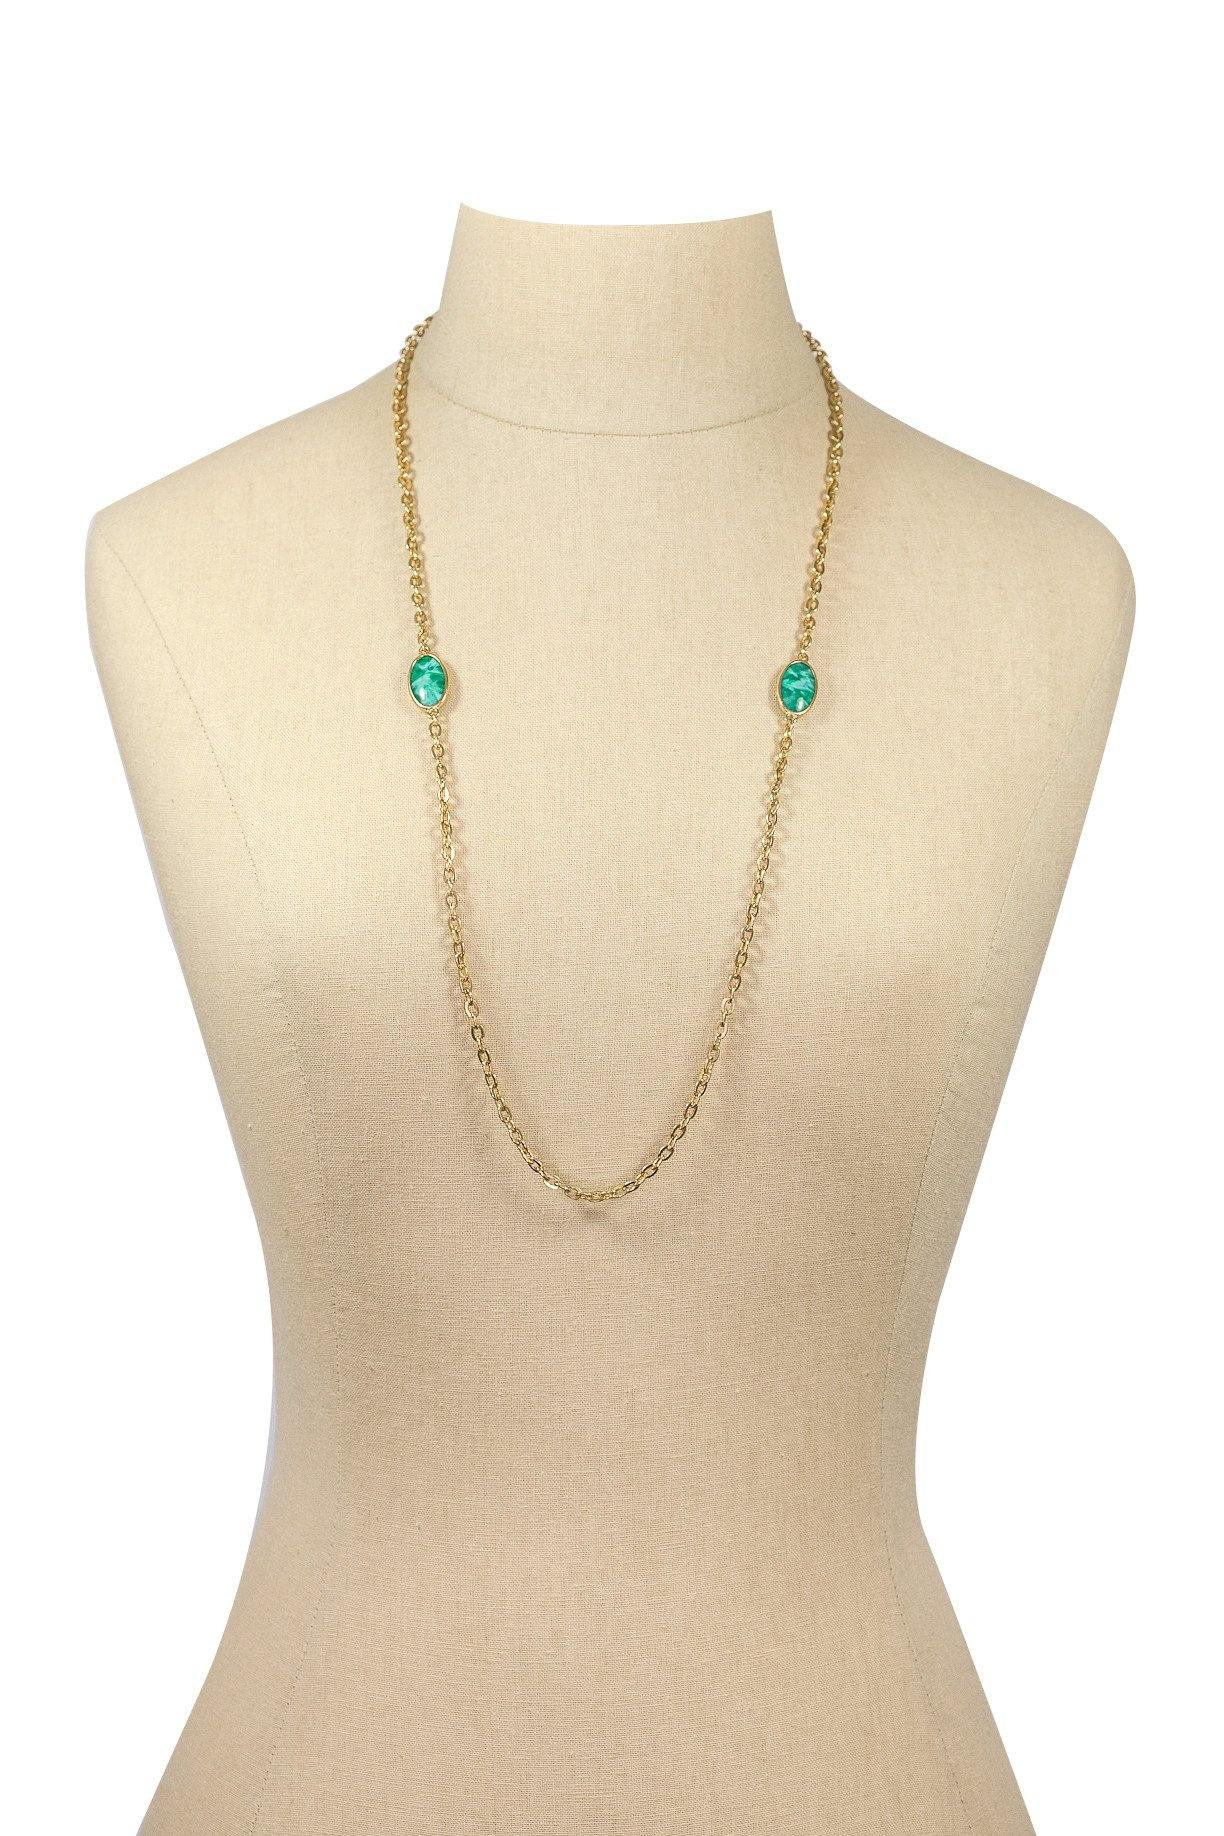 70's Emmons Stone Layering Necklace